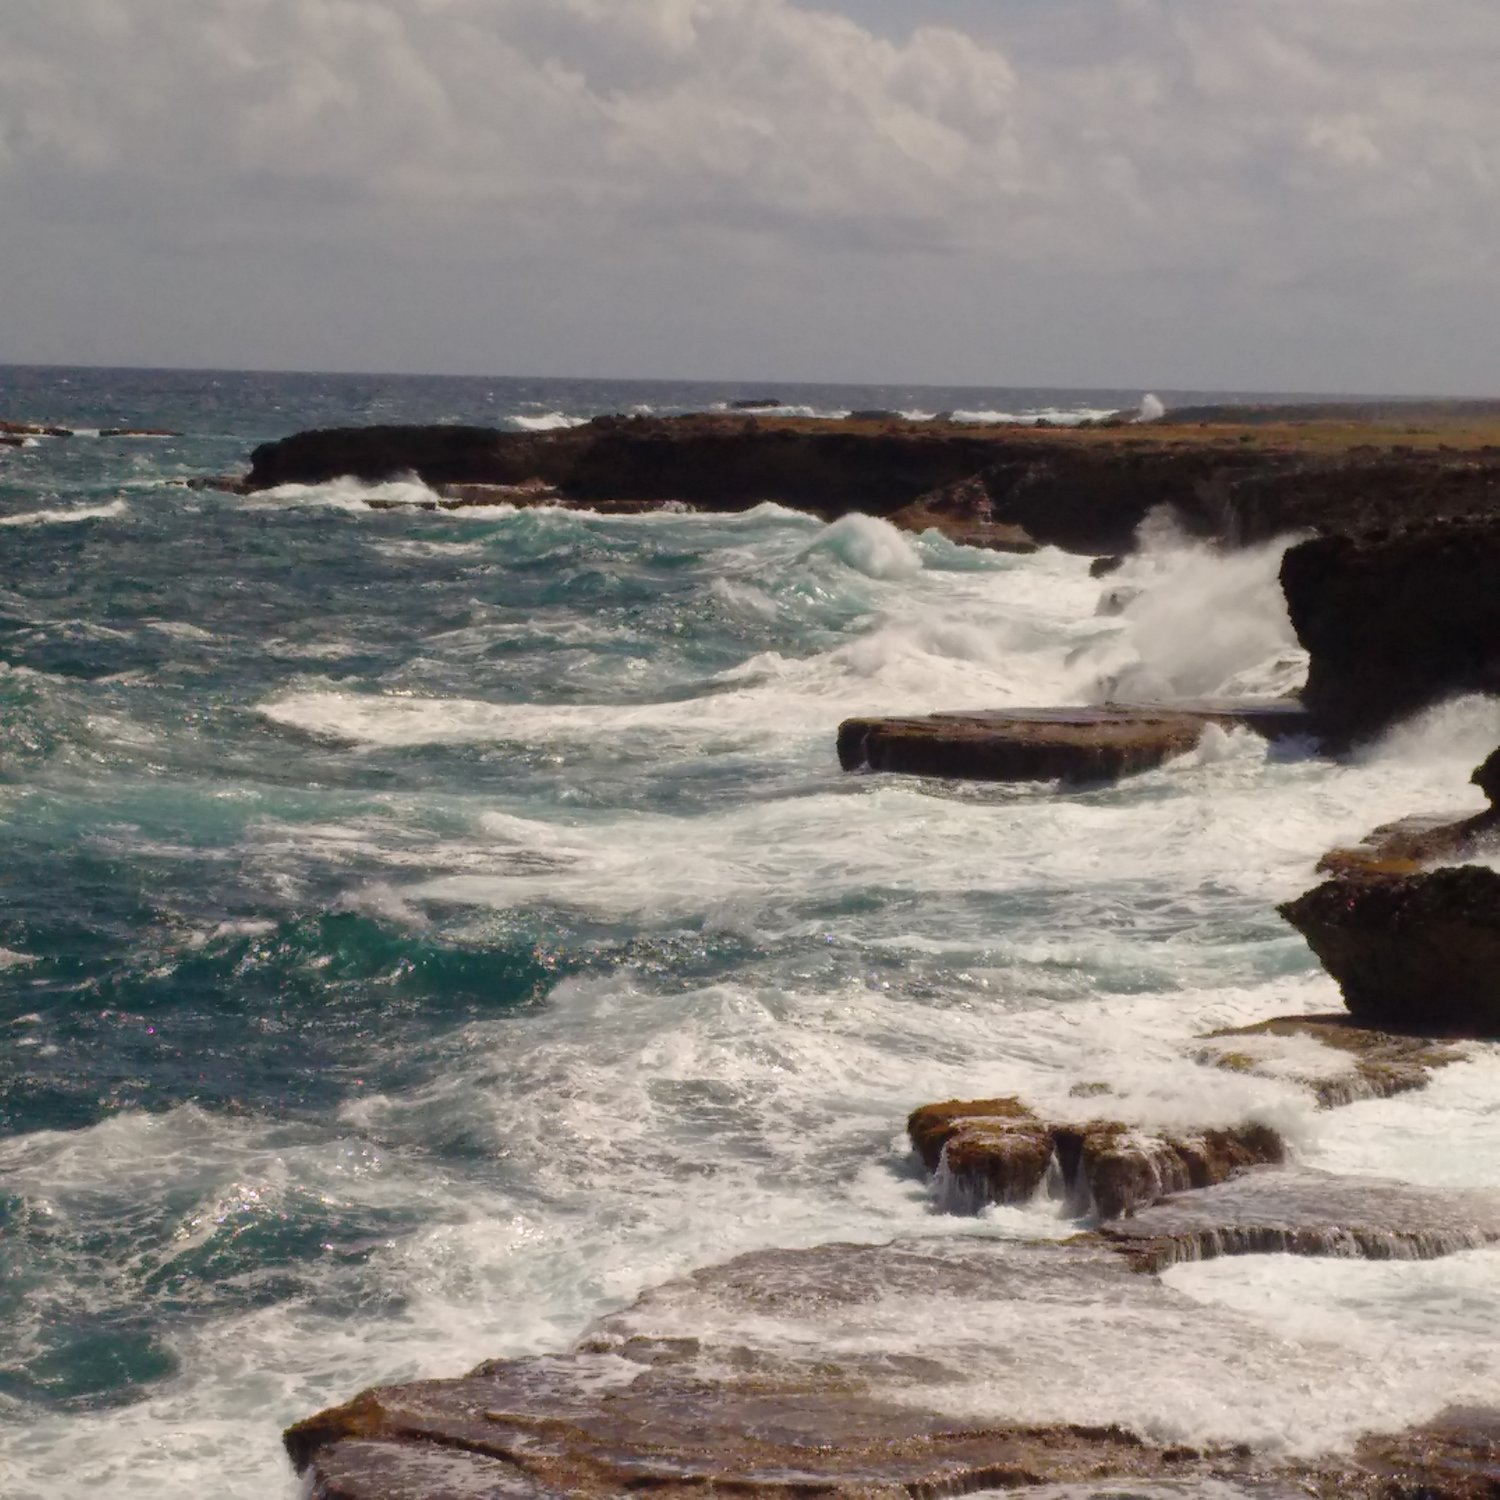 Barbados waves crashing